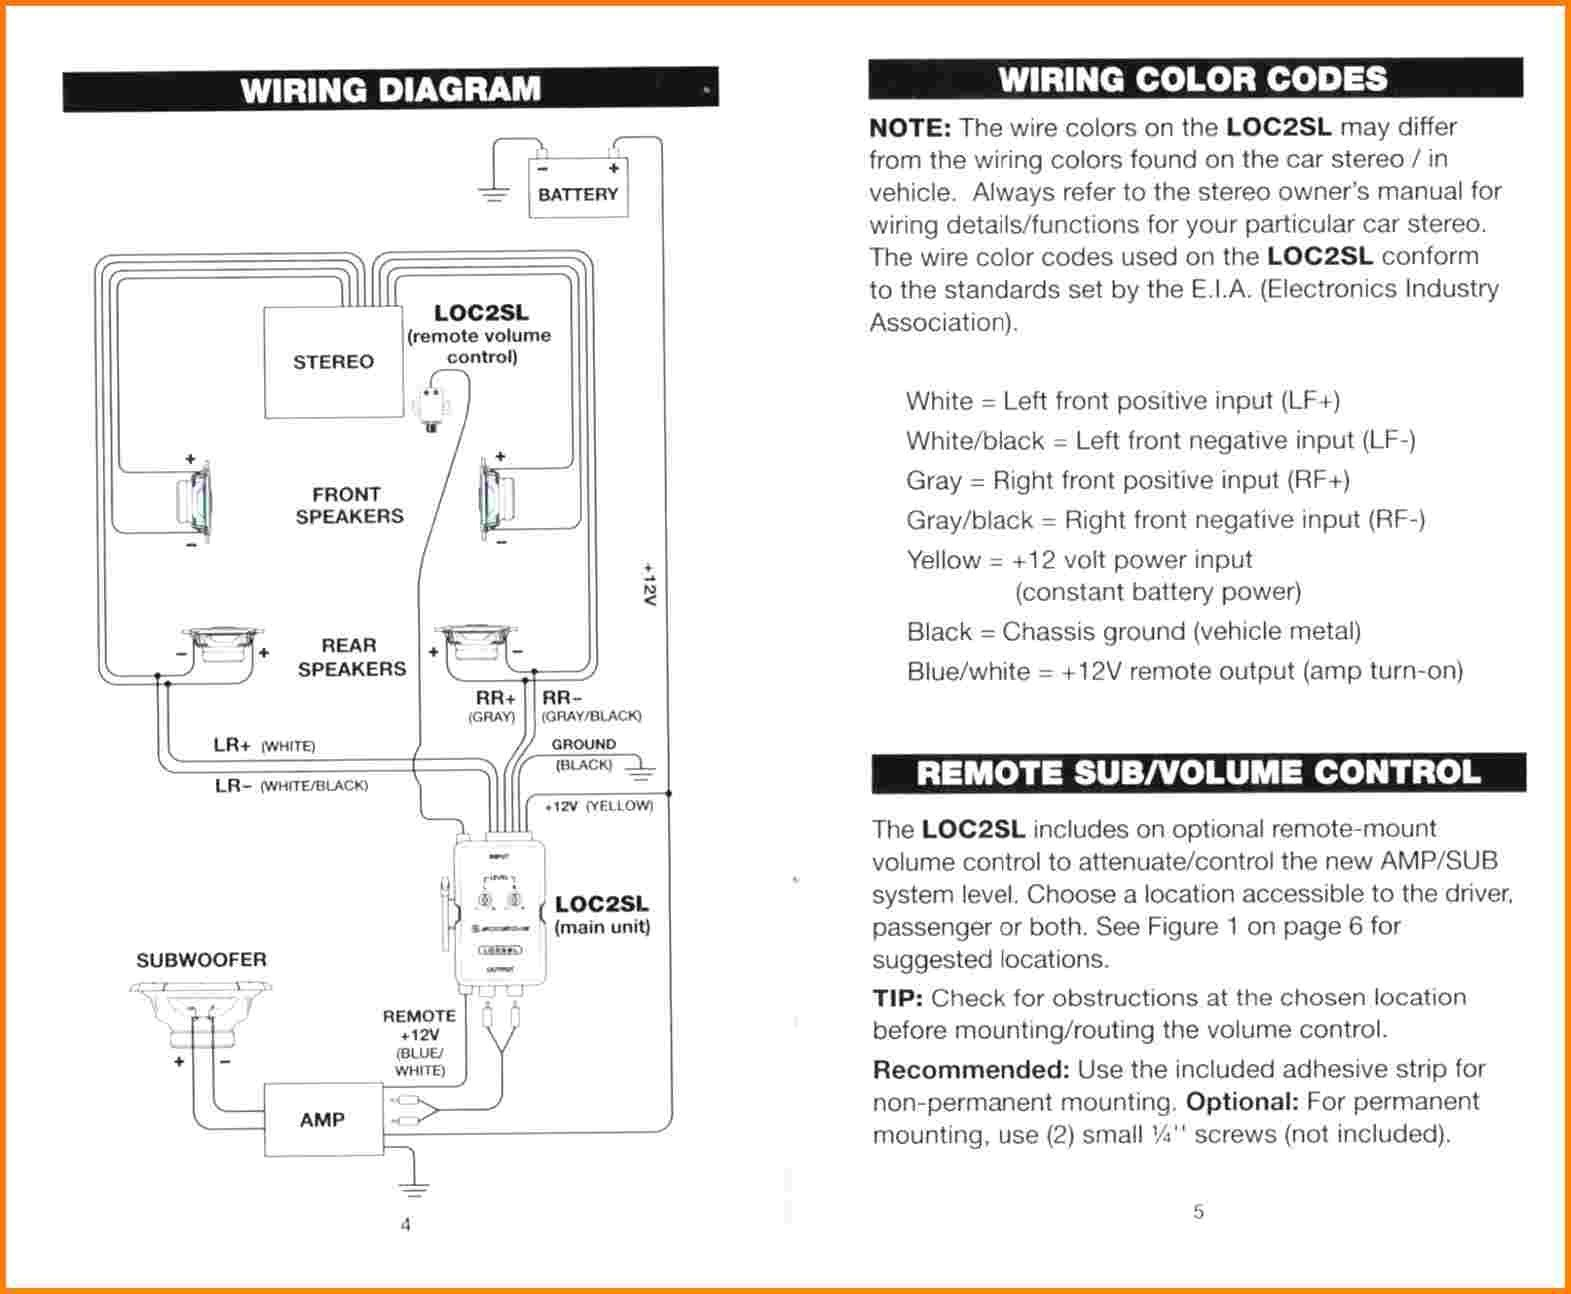 Scosche Line Out Converter Wiring Diagram | Wiring Diagram - Scosche Line Out Converter Wiring Diagram